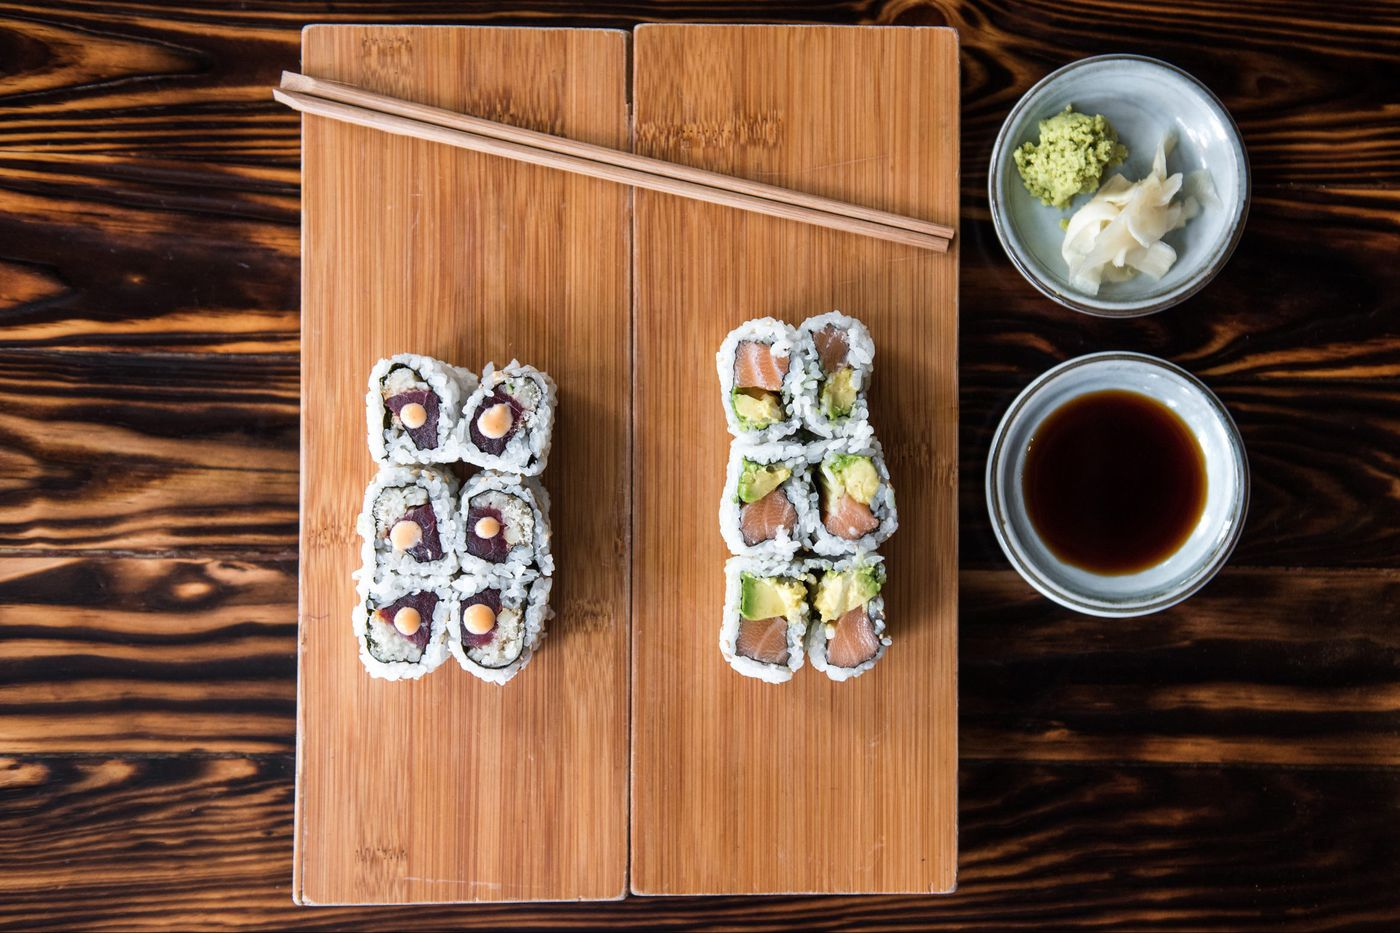 Pro tips for making sushi rolls at home